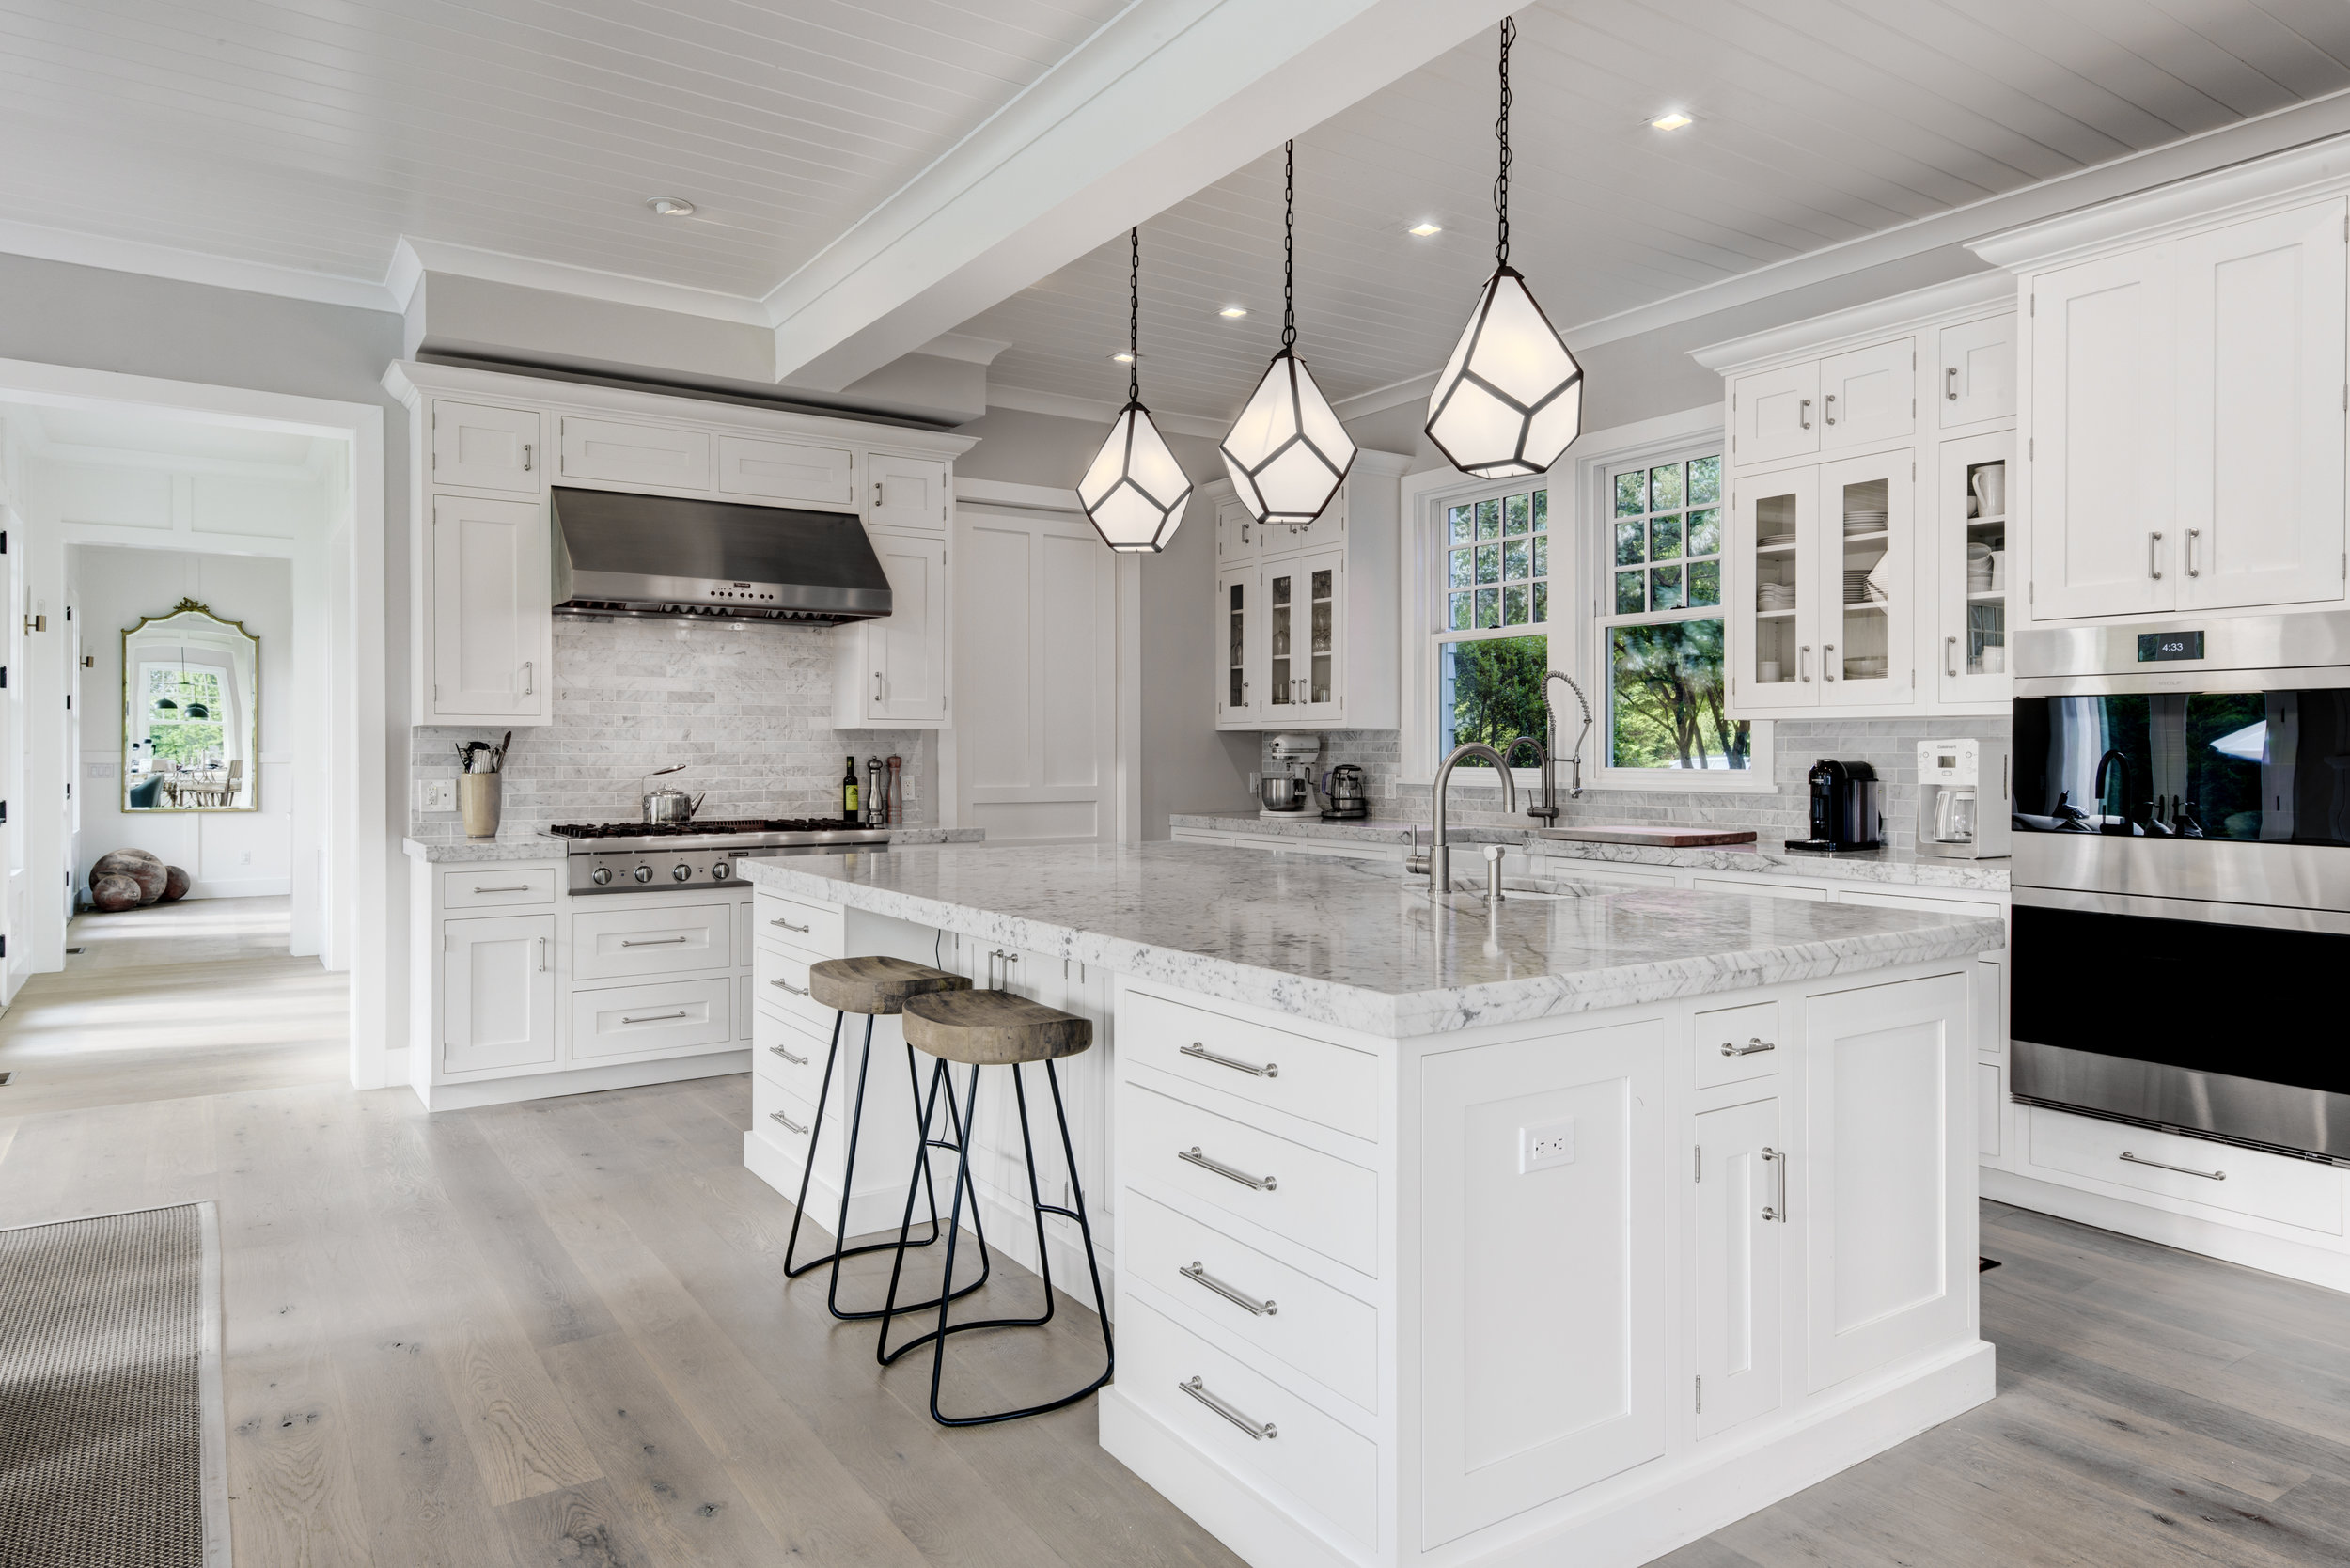 118 Meeting House Ln Amagansett_Kitchen.jpg